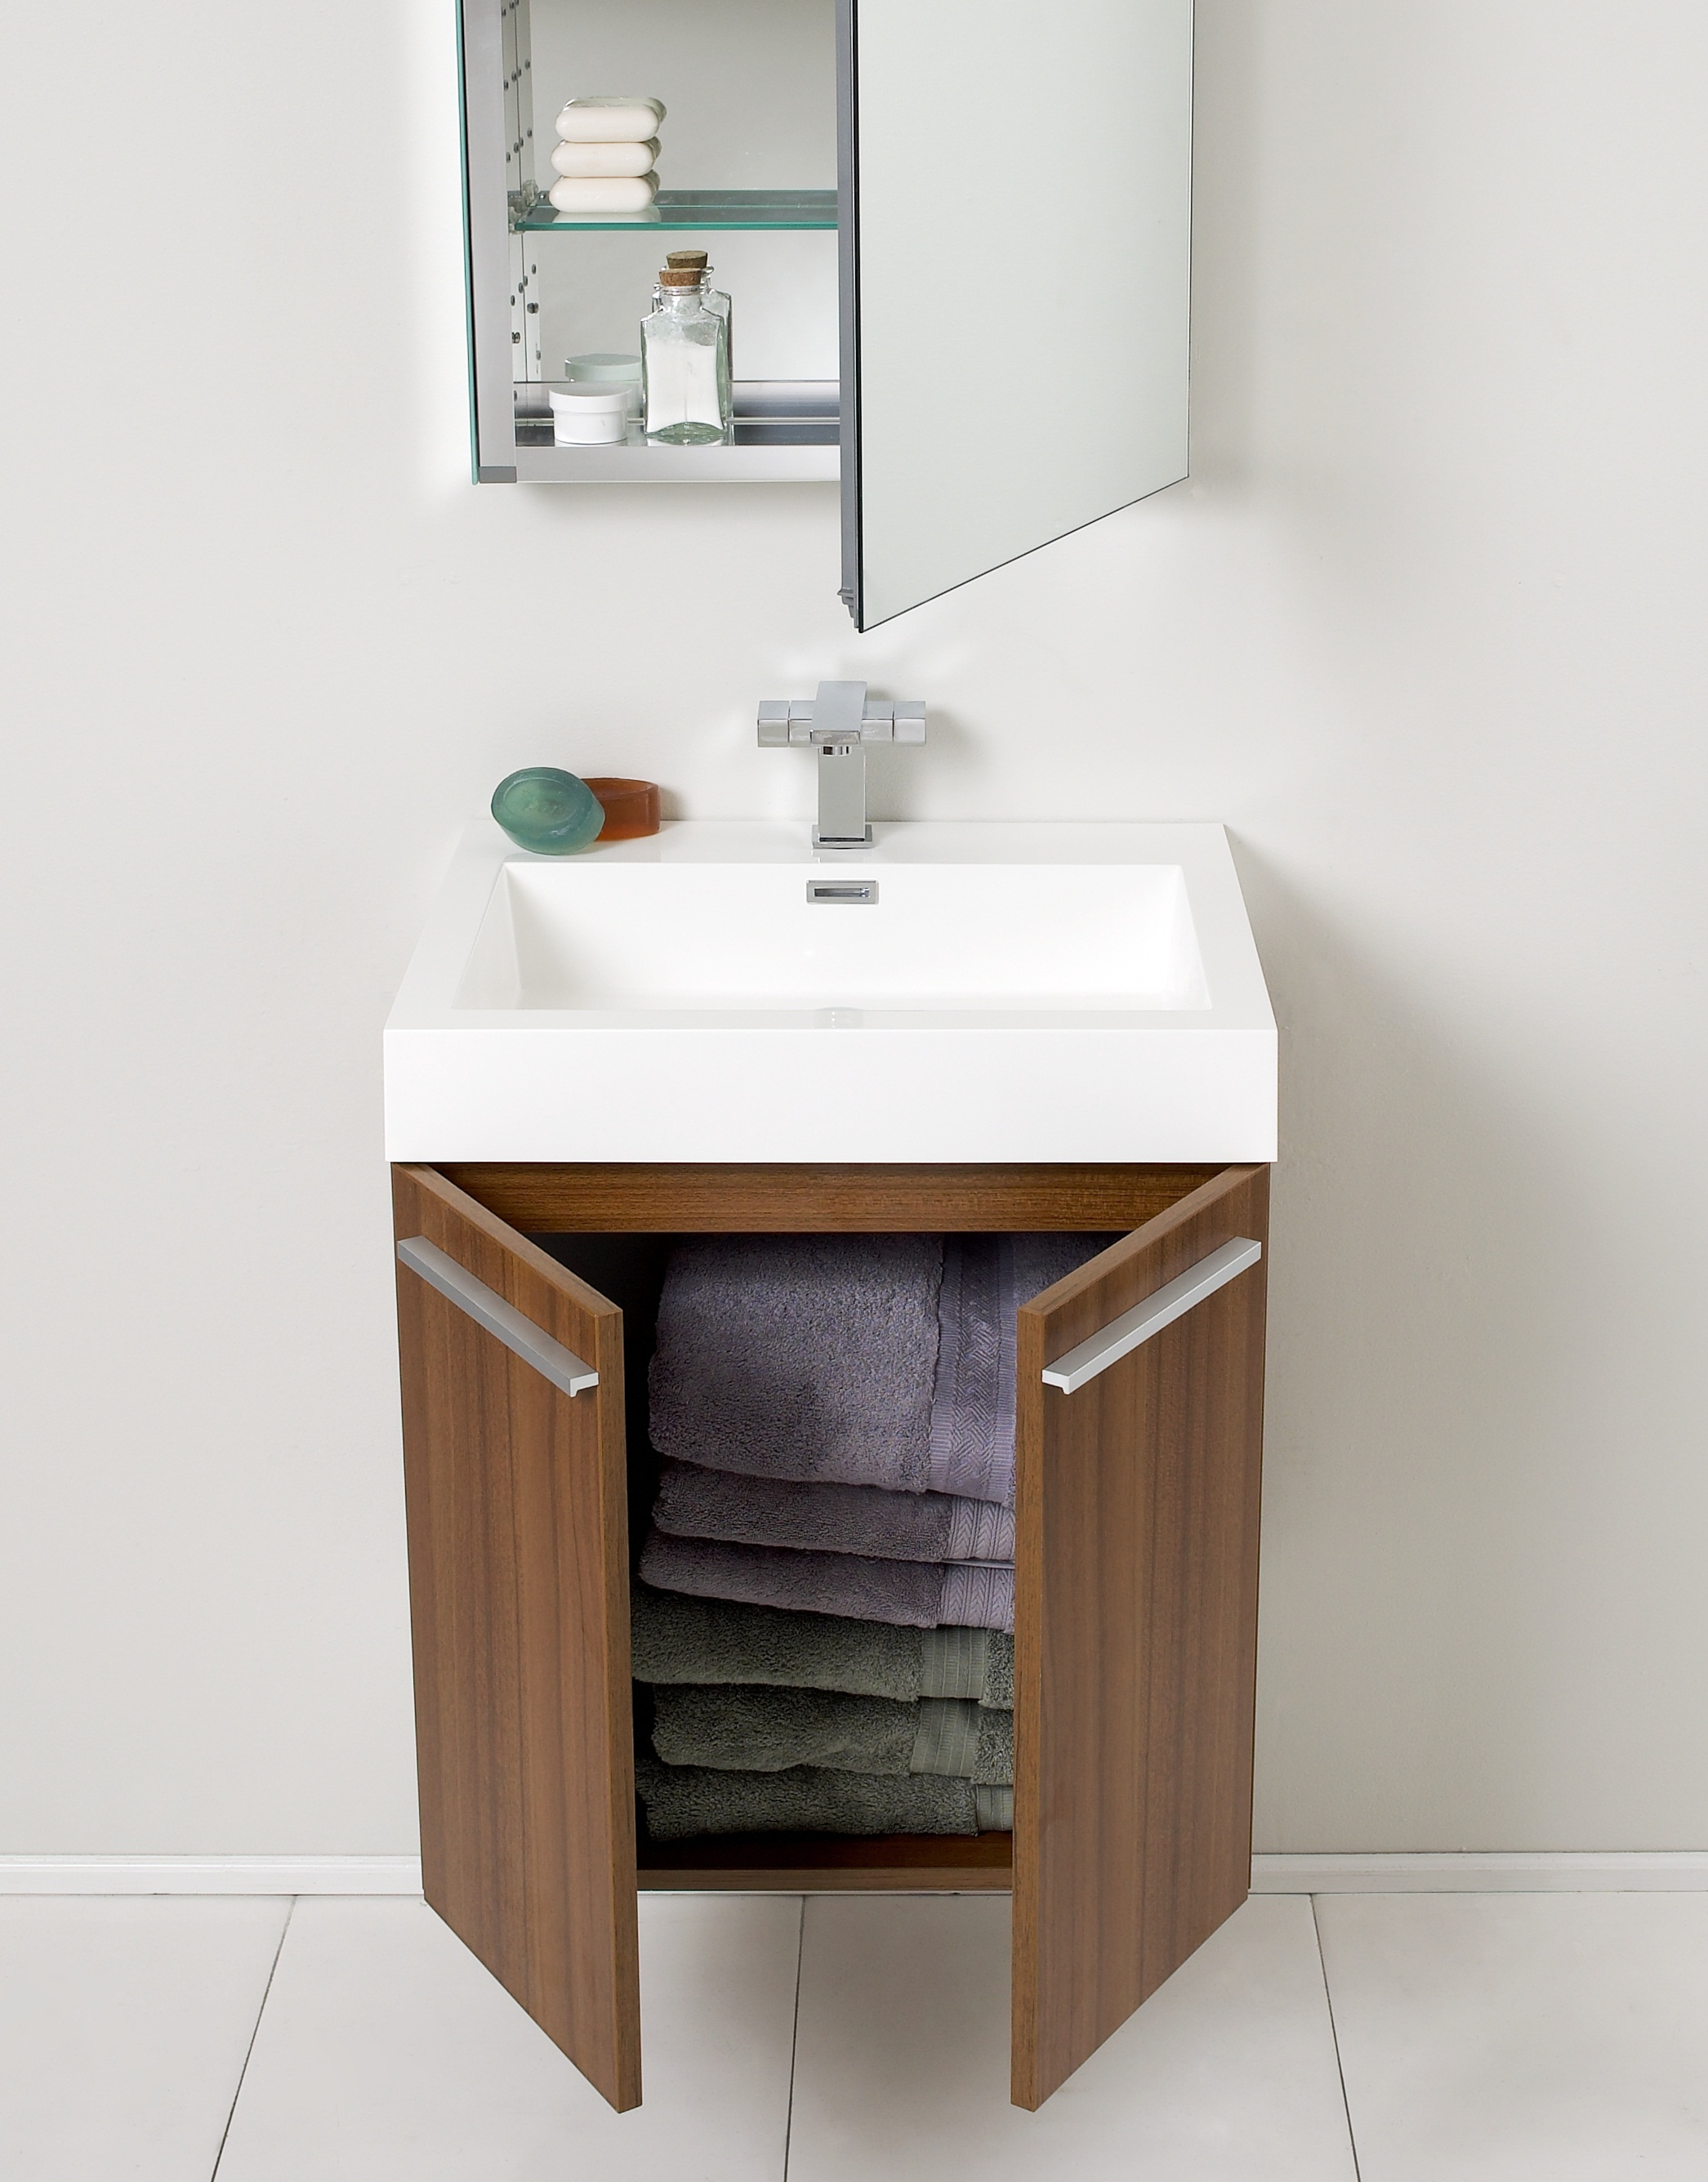 Small Bathroom Vanity Cabinets EVA Furniture - Design bathroom vanity cabinets